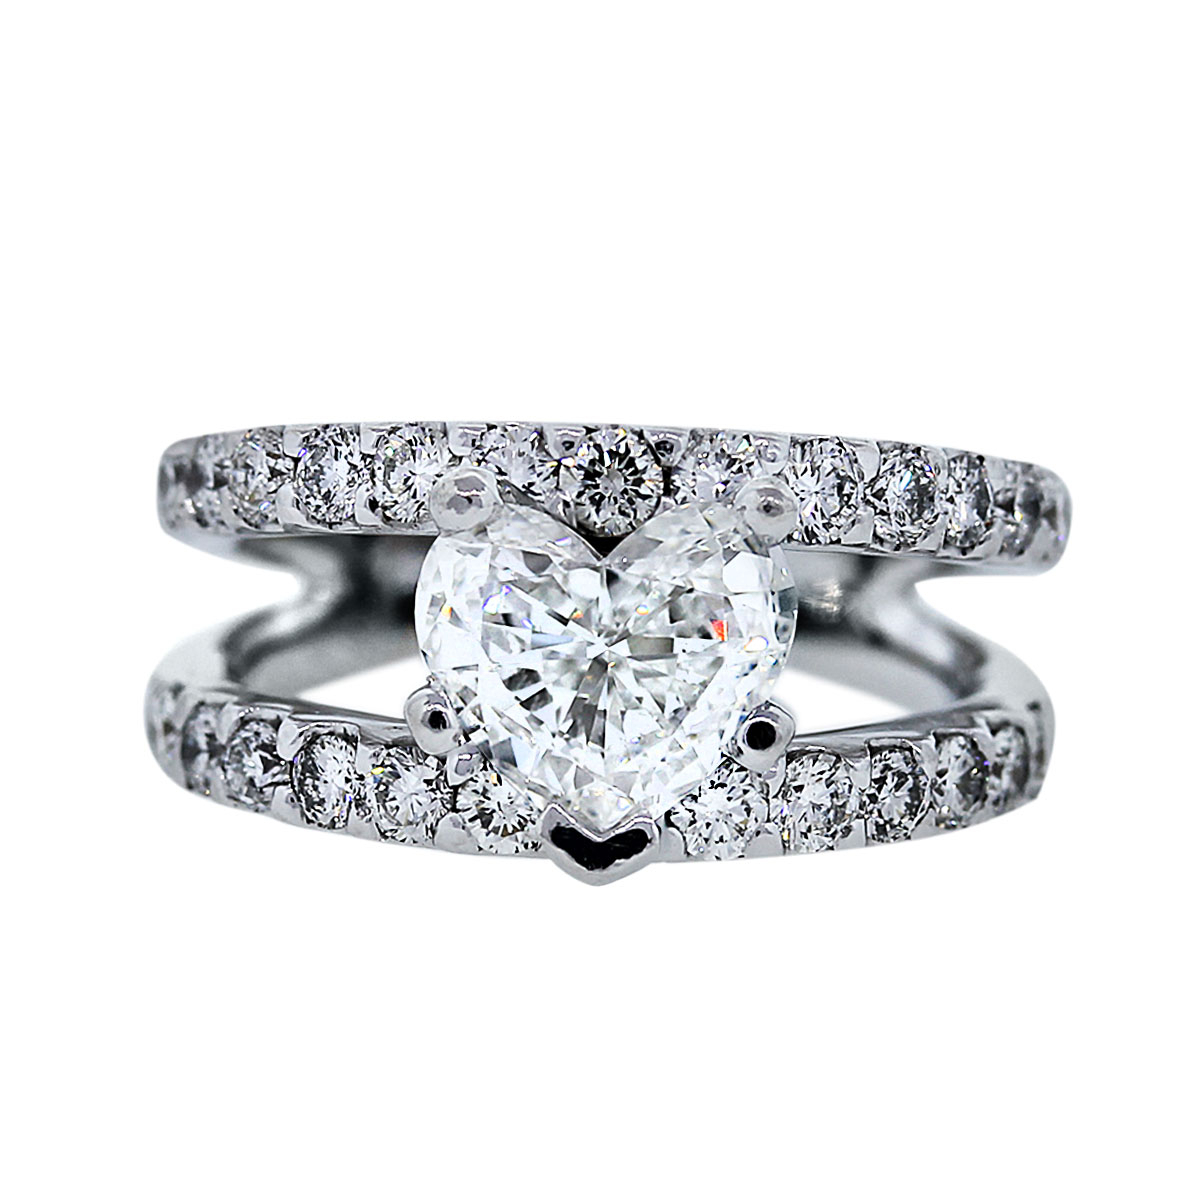 White Gold Split Shank Heart Diamond Engagement Ring Shaped In Most Popular Diamond Heart Shaped Anniversary Bands In Gold (View 25 of 25)